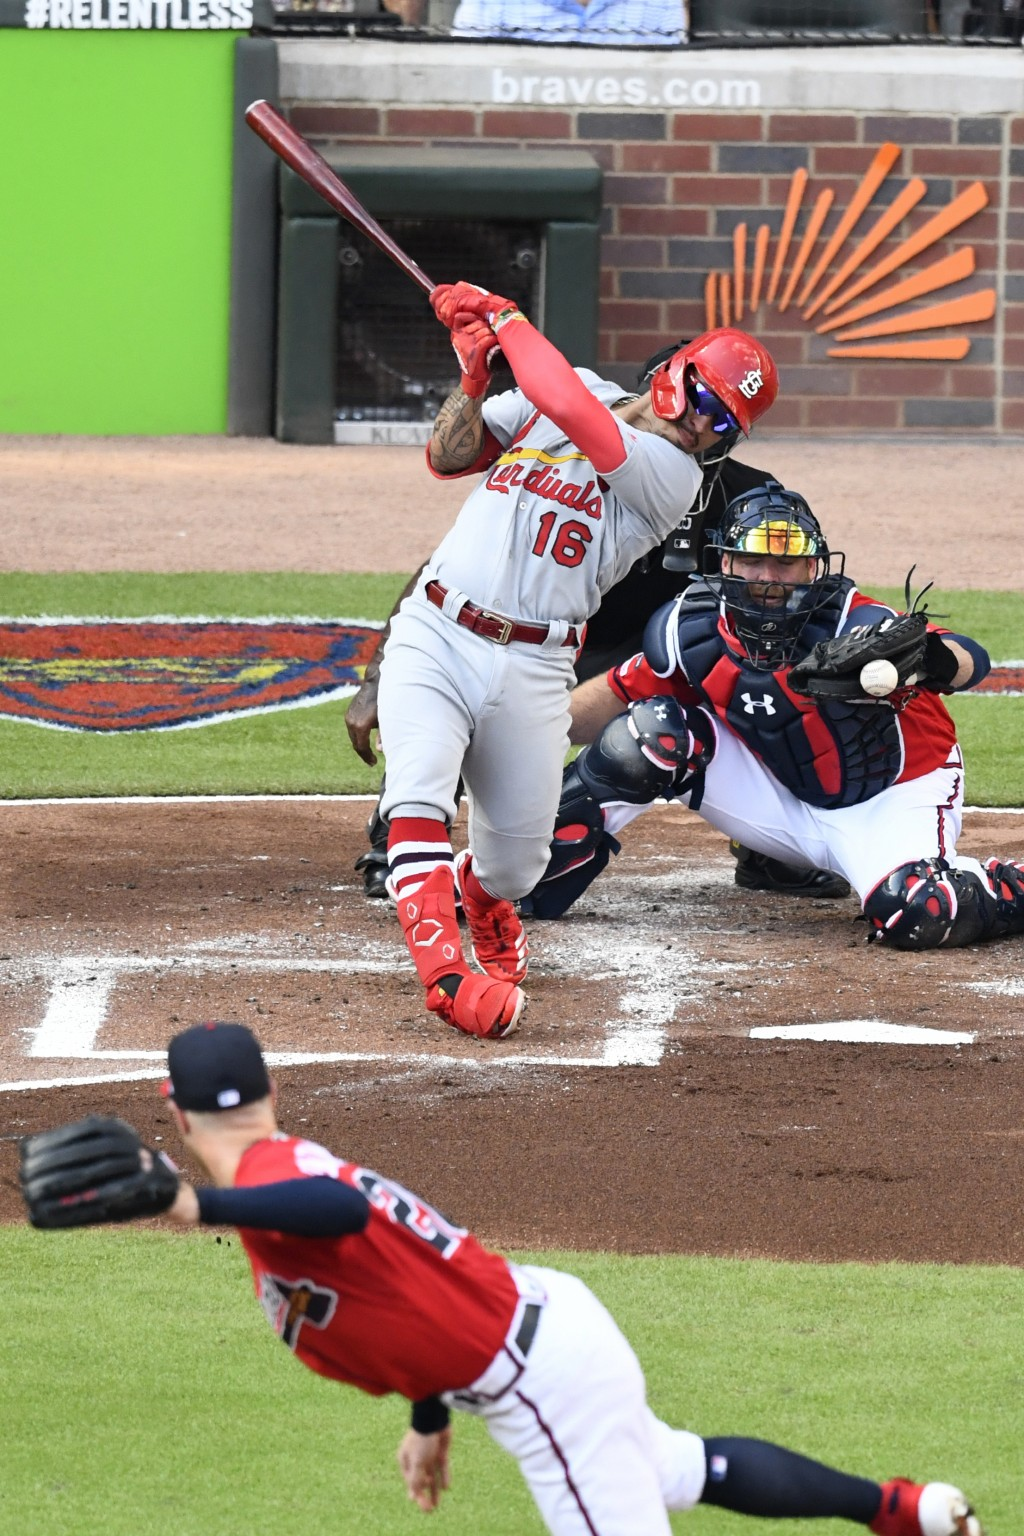 St. Louis Cardinals second baseman Kolten Wong (16) strikes out in the second inning during Game 2 of a best-of-five National League Division Series a...